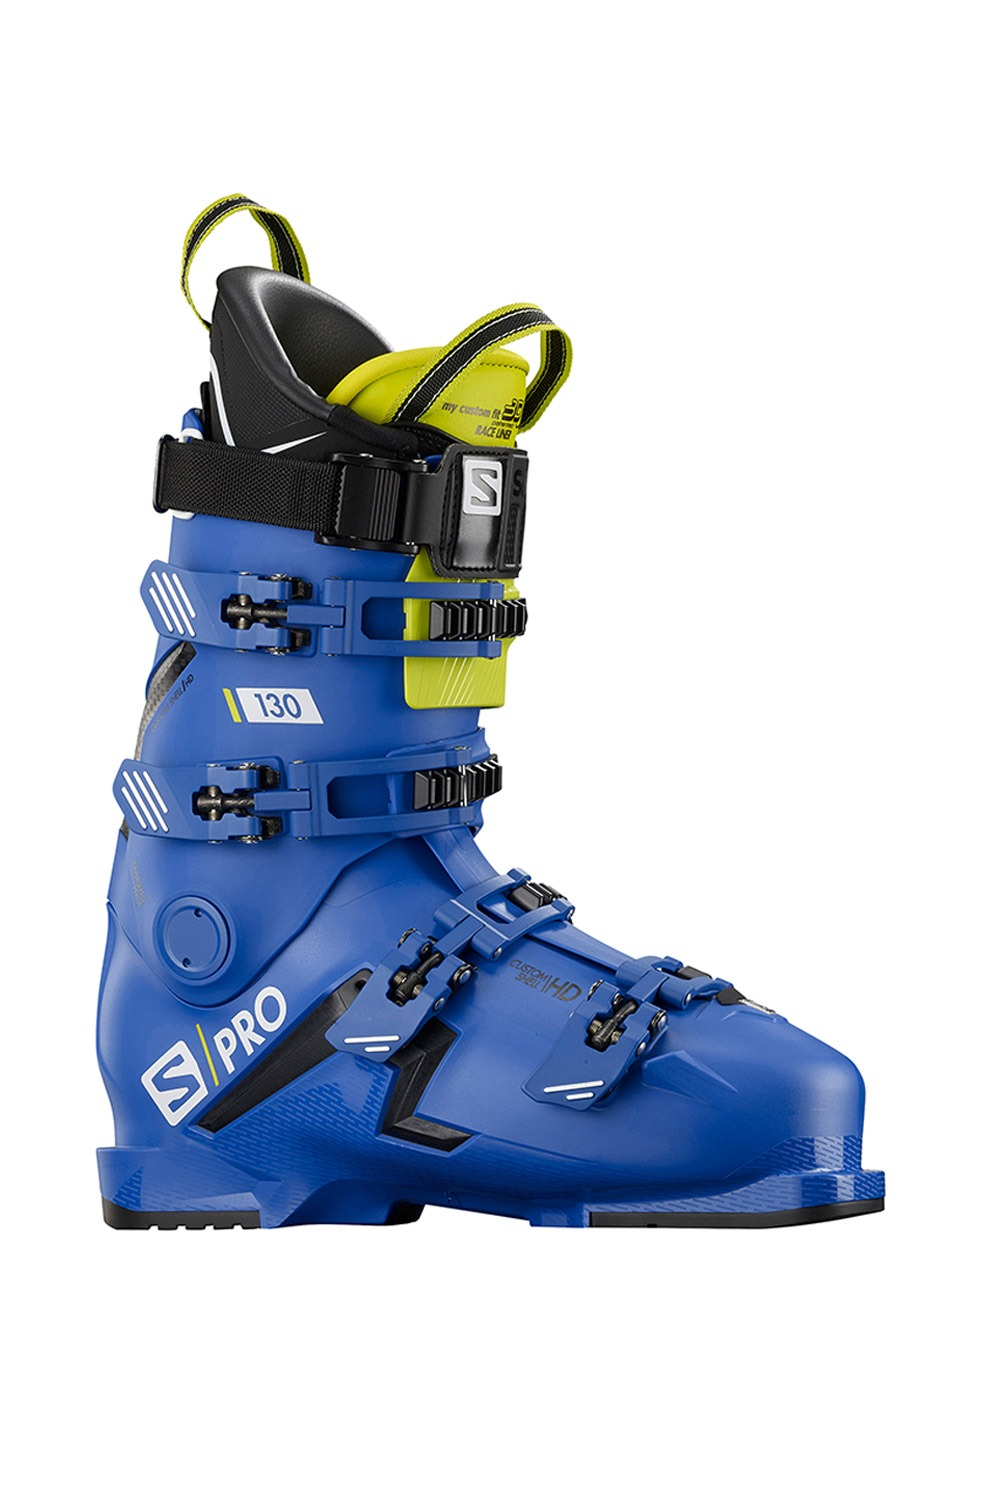 1920 살로몬 스키 부츠 에스프로 130 SALOMON(L40873300)S/PRO 130 BOOT FITTER FRIENDLY_RACE BLUE/BLACK/ACID GREEN_B5SA921B1